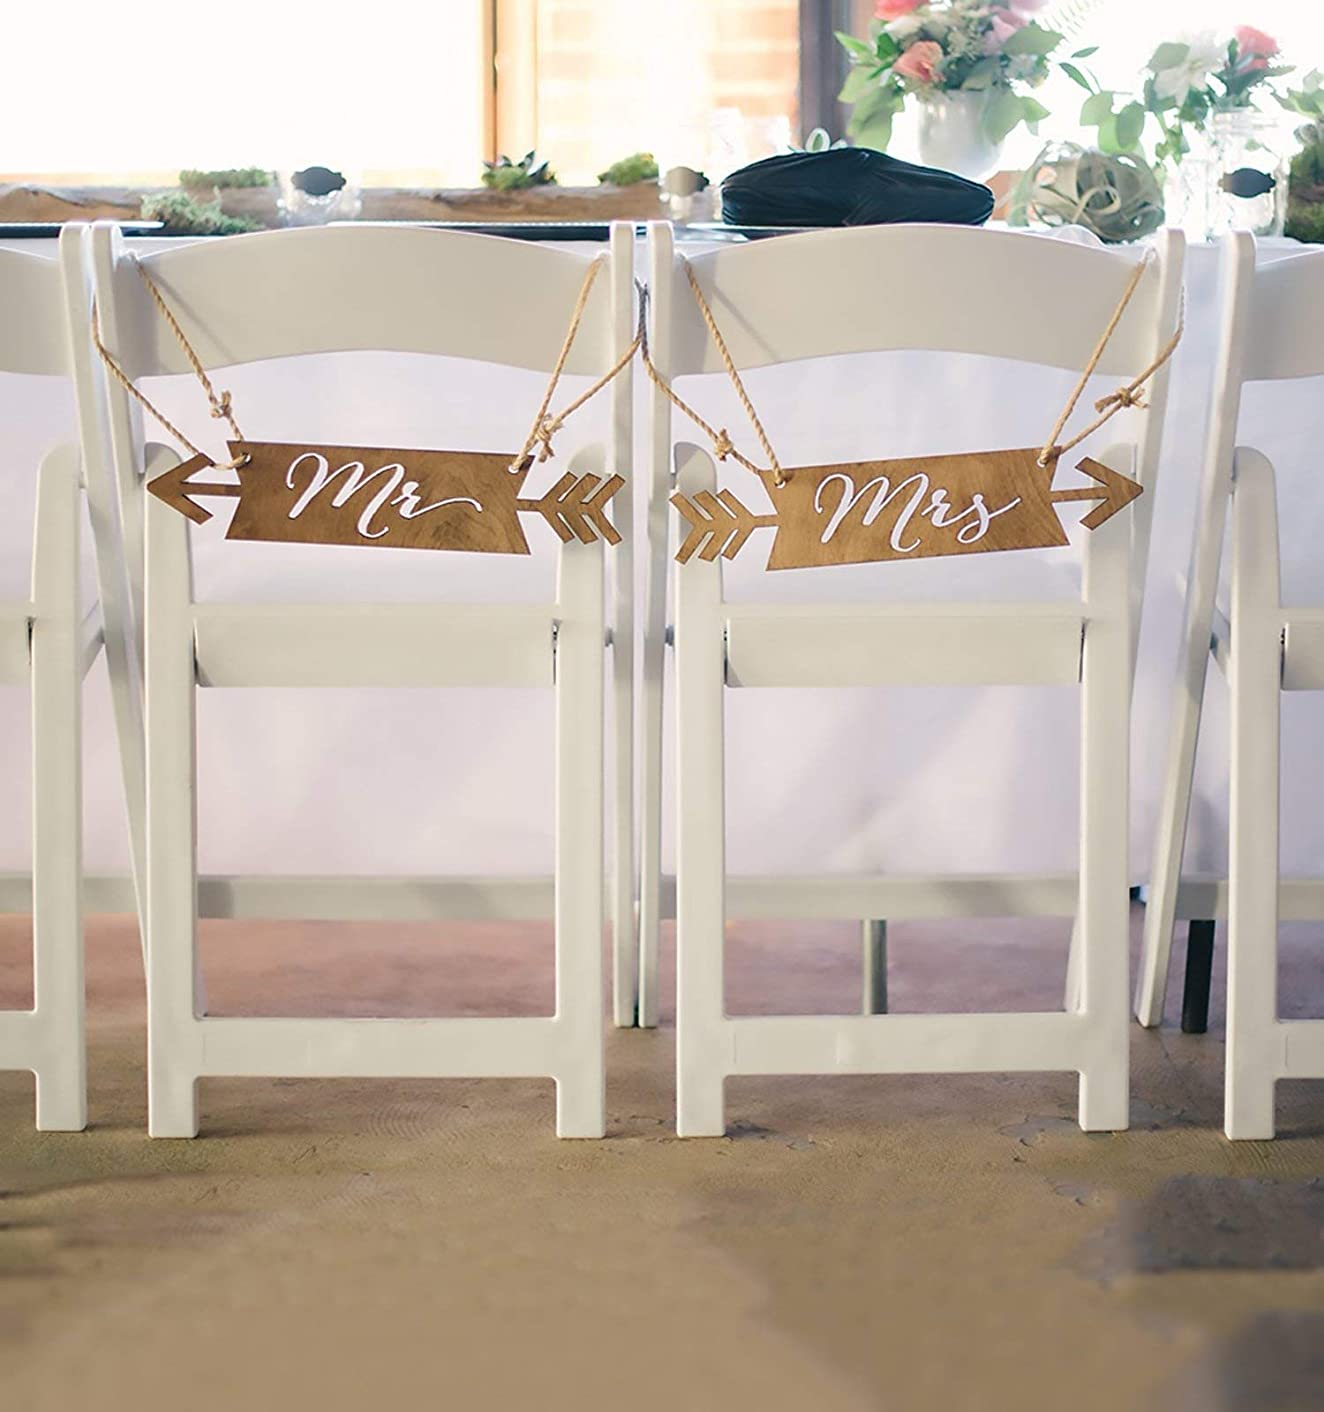 Mr & Mrs Chair Signs - Boho Chic Arrow Chair Signs for Bride & Groom Wedding Sweetheart Table Chair Decorations